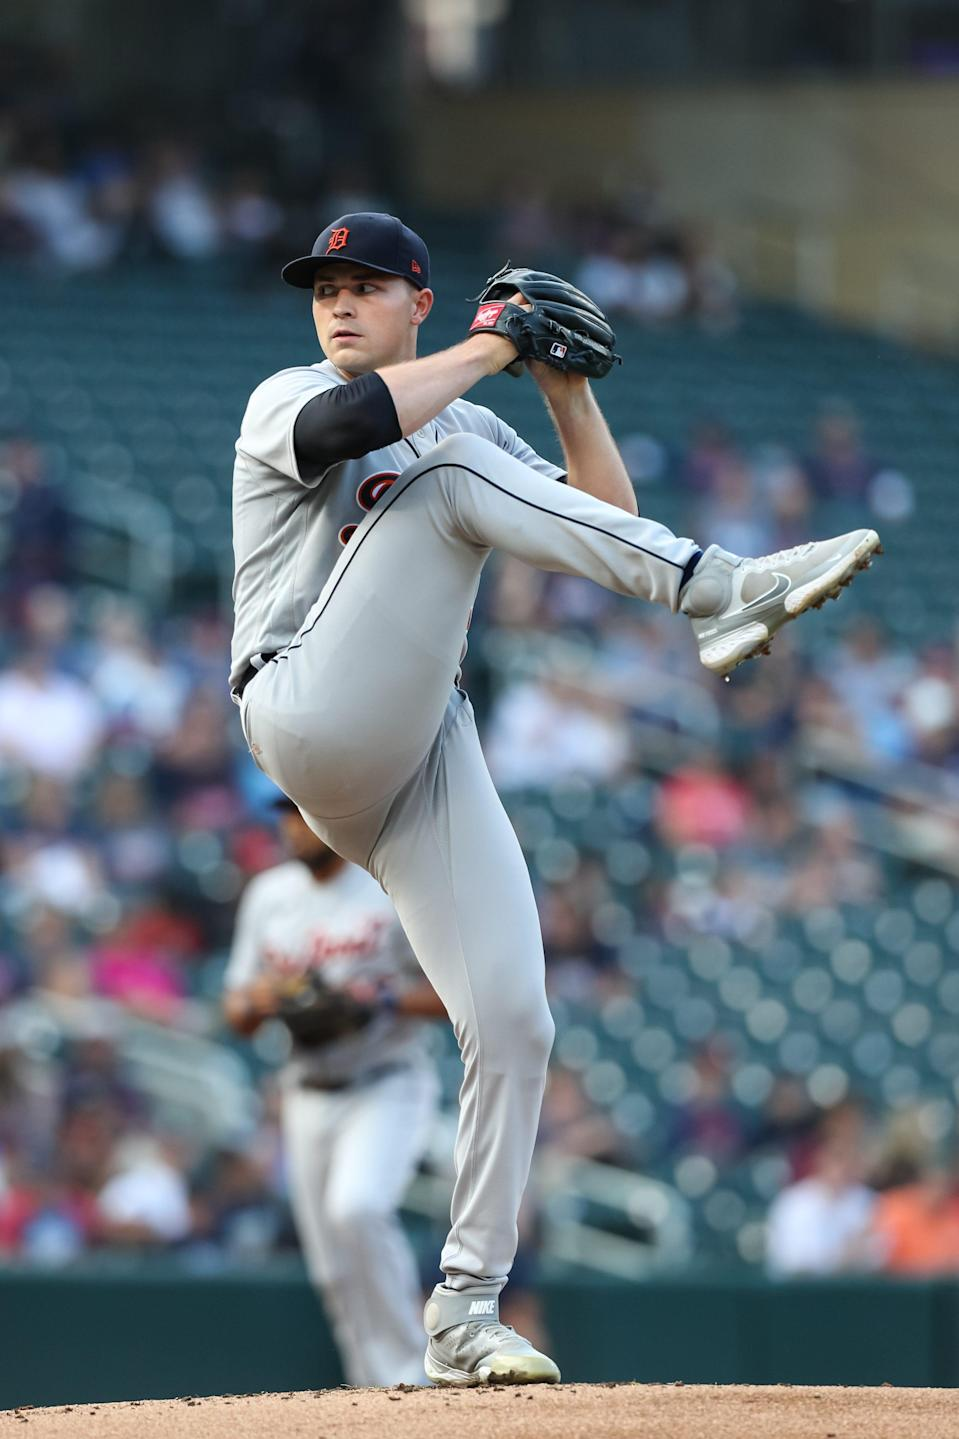 Tarik Skubal of the Detroit Tigers delivers a pitch against the Minnesota Twins in the first inning of the game at Target Field on July 8, 2021 in Minneapolis.